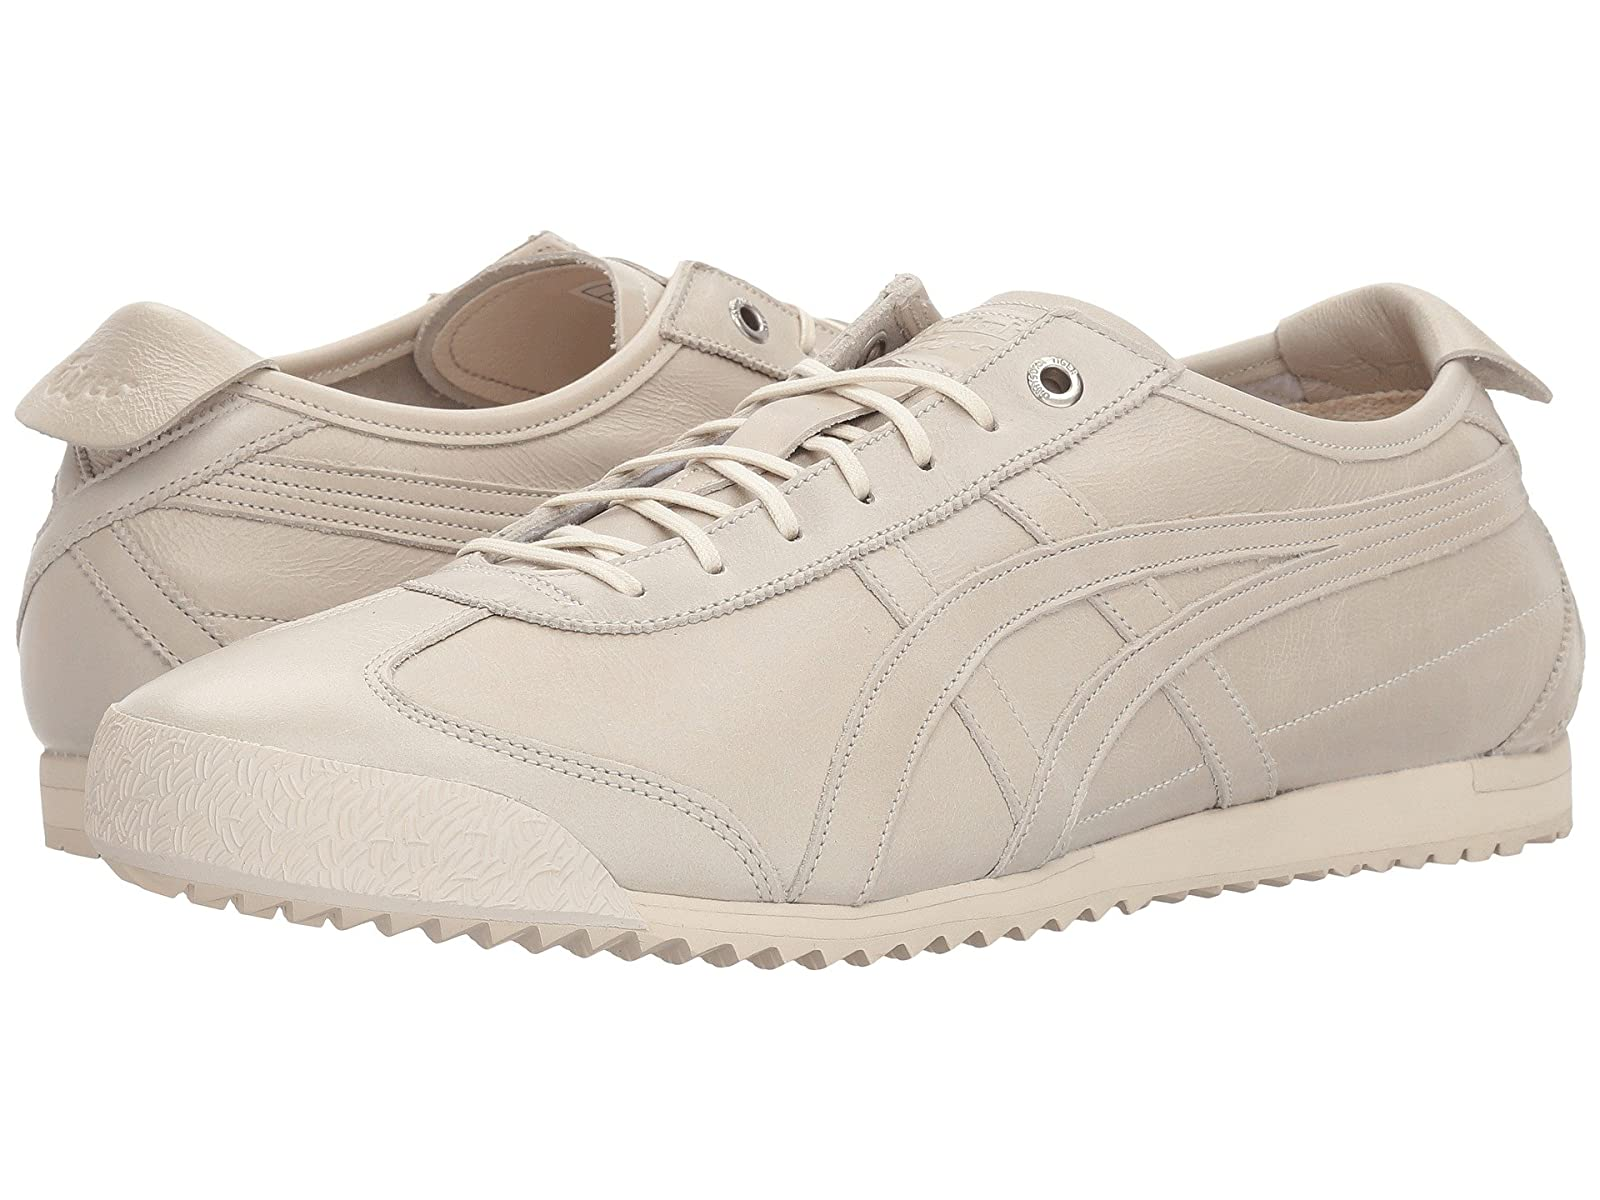 Onitsuka Tiger by Asics Mexico 66® SDAtmospheric grades have affordable shoes